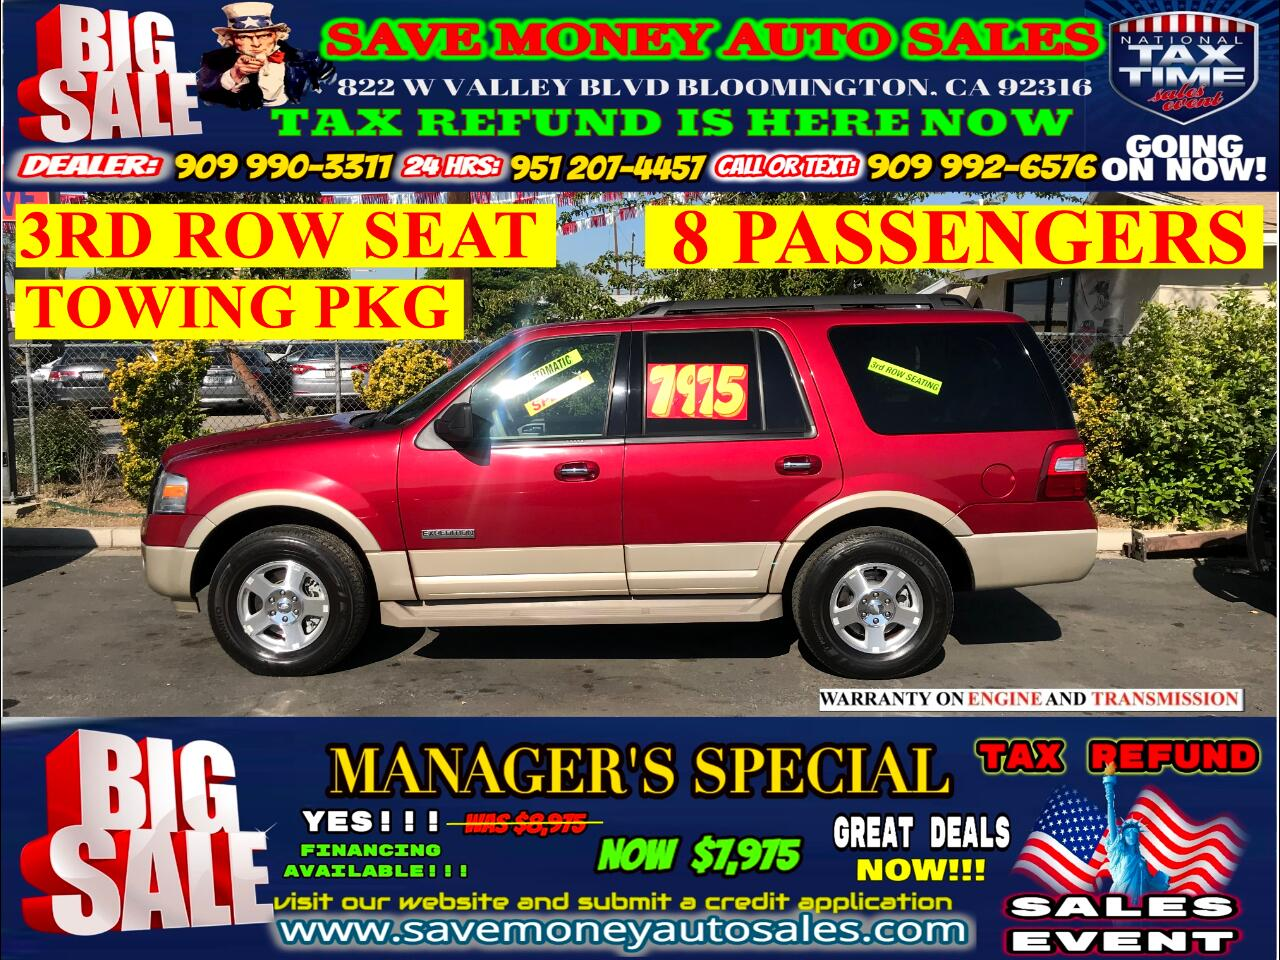 2007 Ford Expedition EDDIE BAUER> 3RD ROW SEAT>8 PASSENGERS